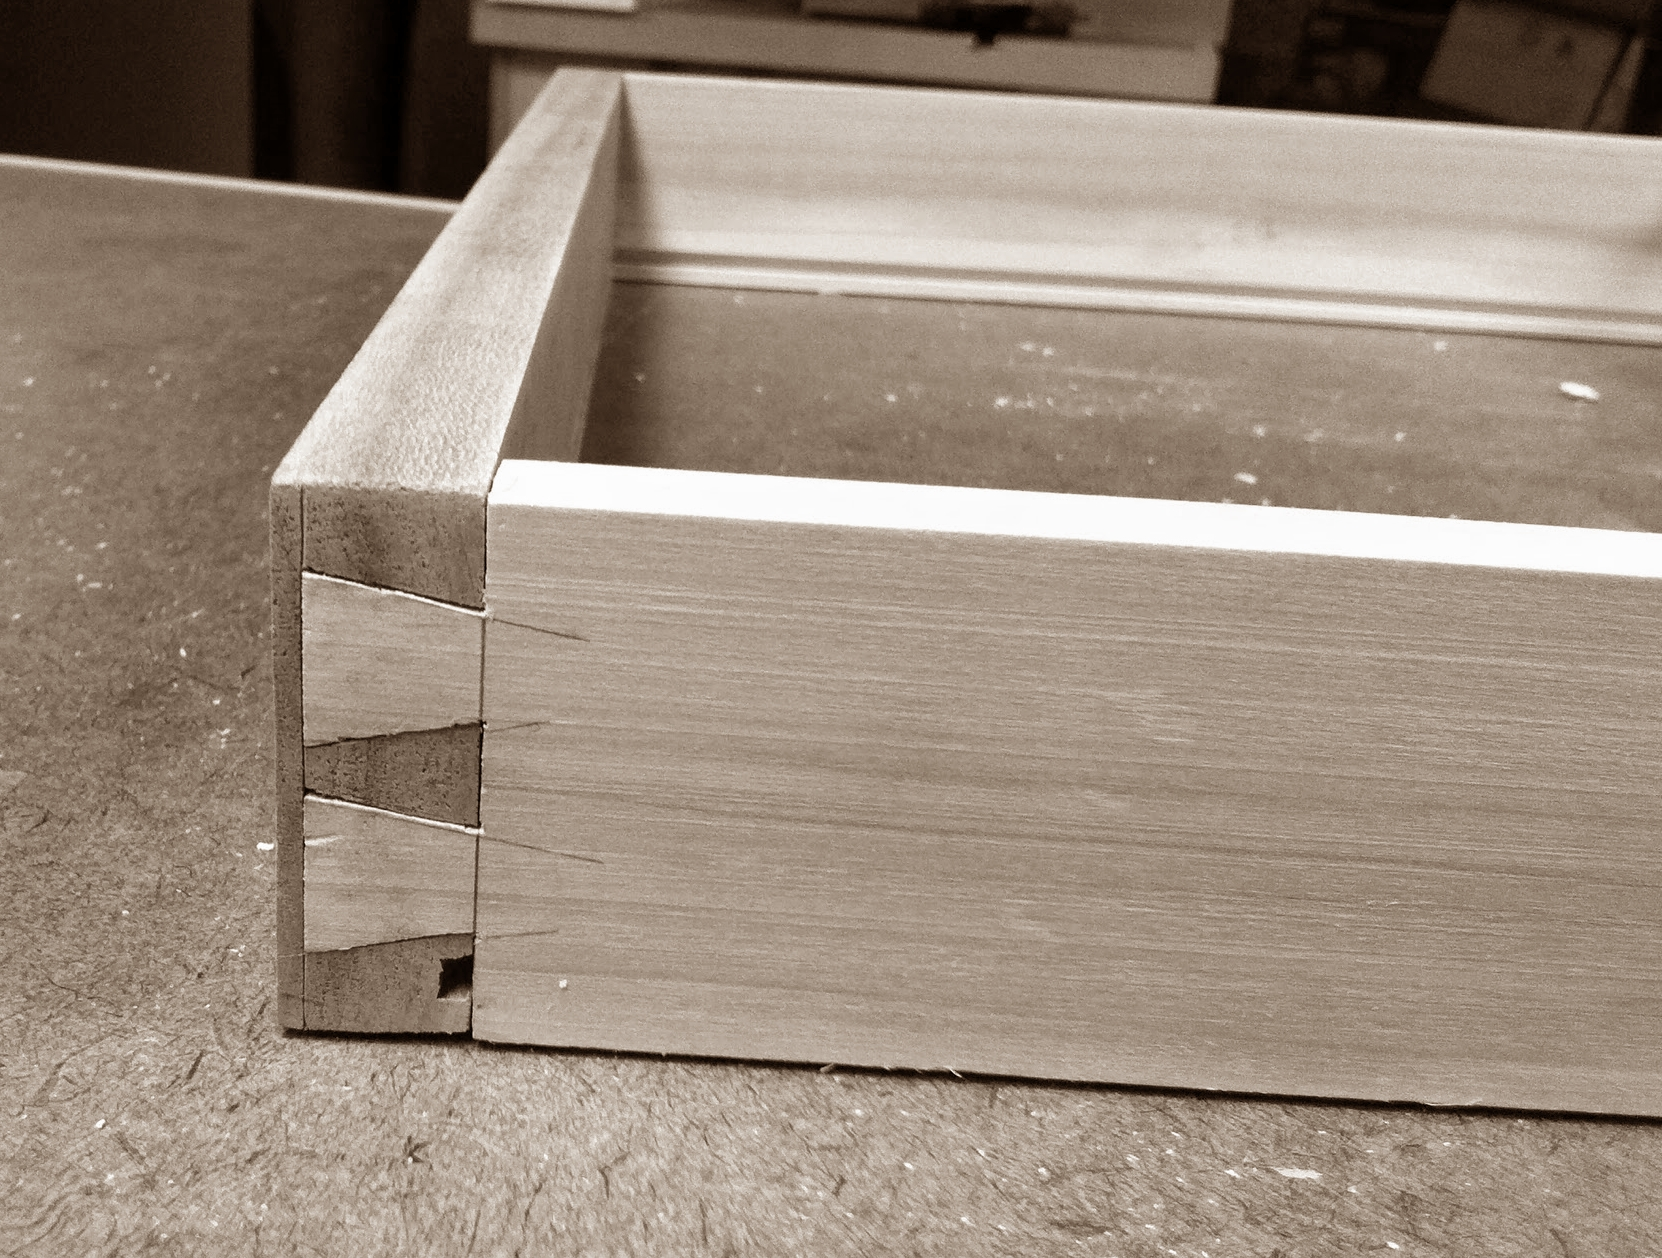 Front dovetails on drawer #2